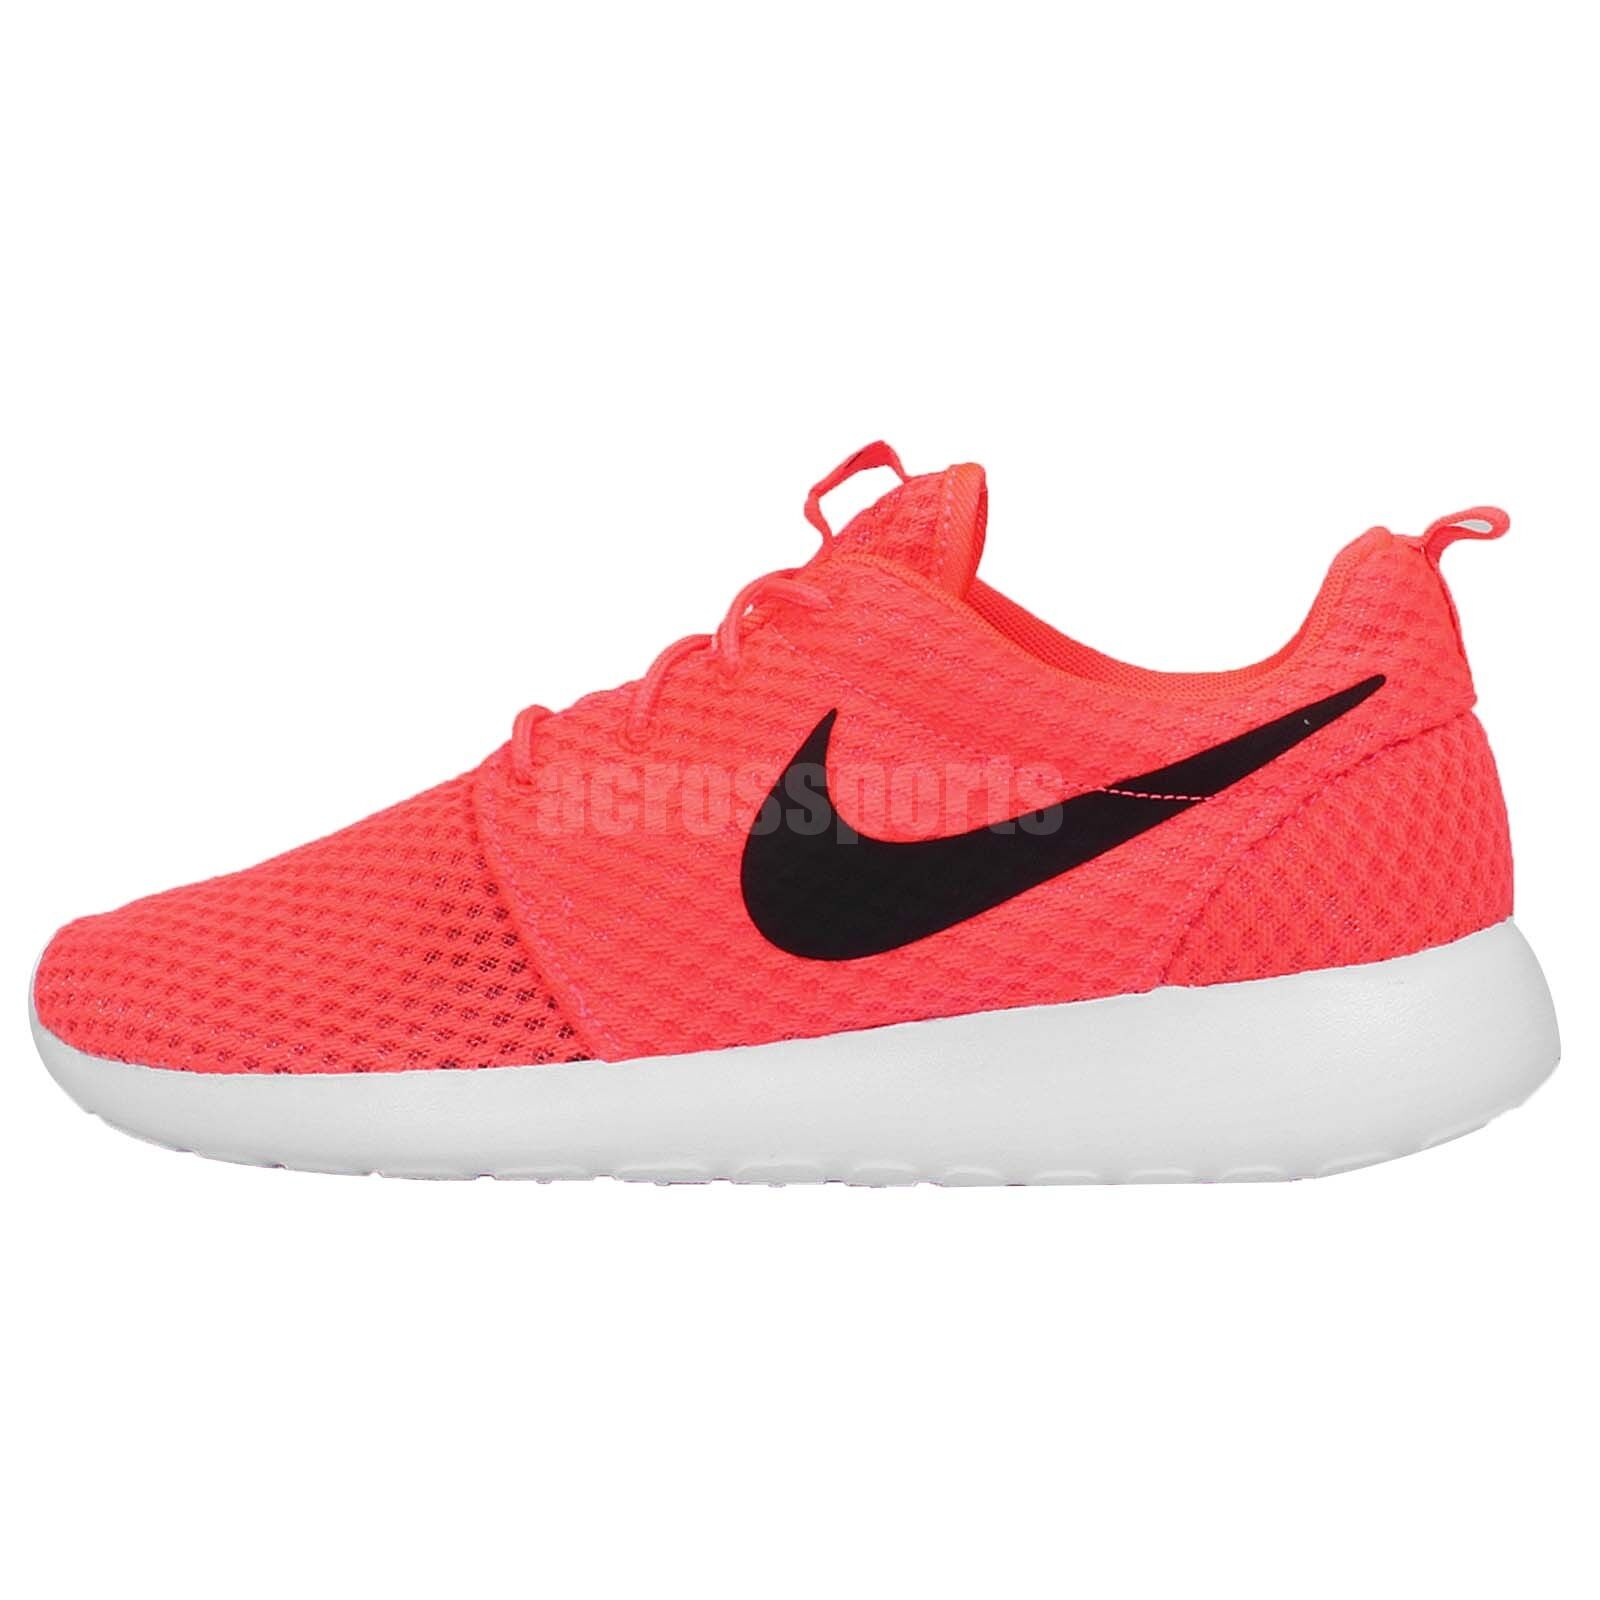 f4a05fa31d29 30%OFF Nike Roshe One BR Breathe Rosherun Red Black NSW Mens Running Shoes  Sneakers